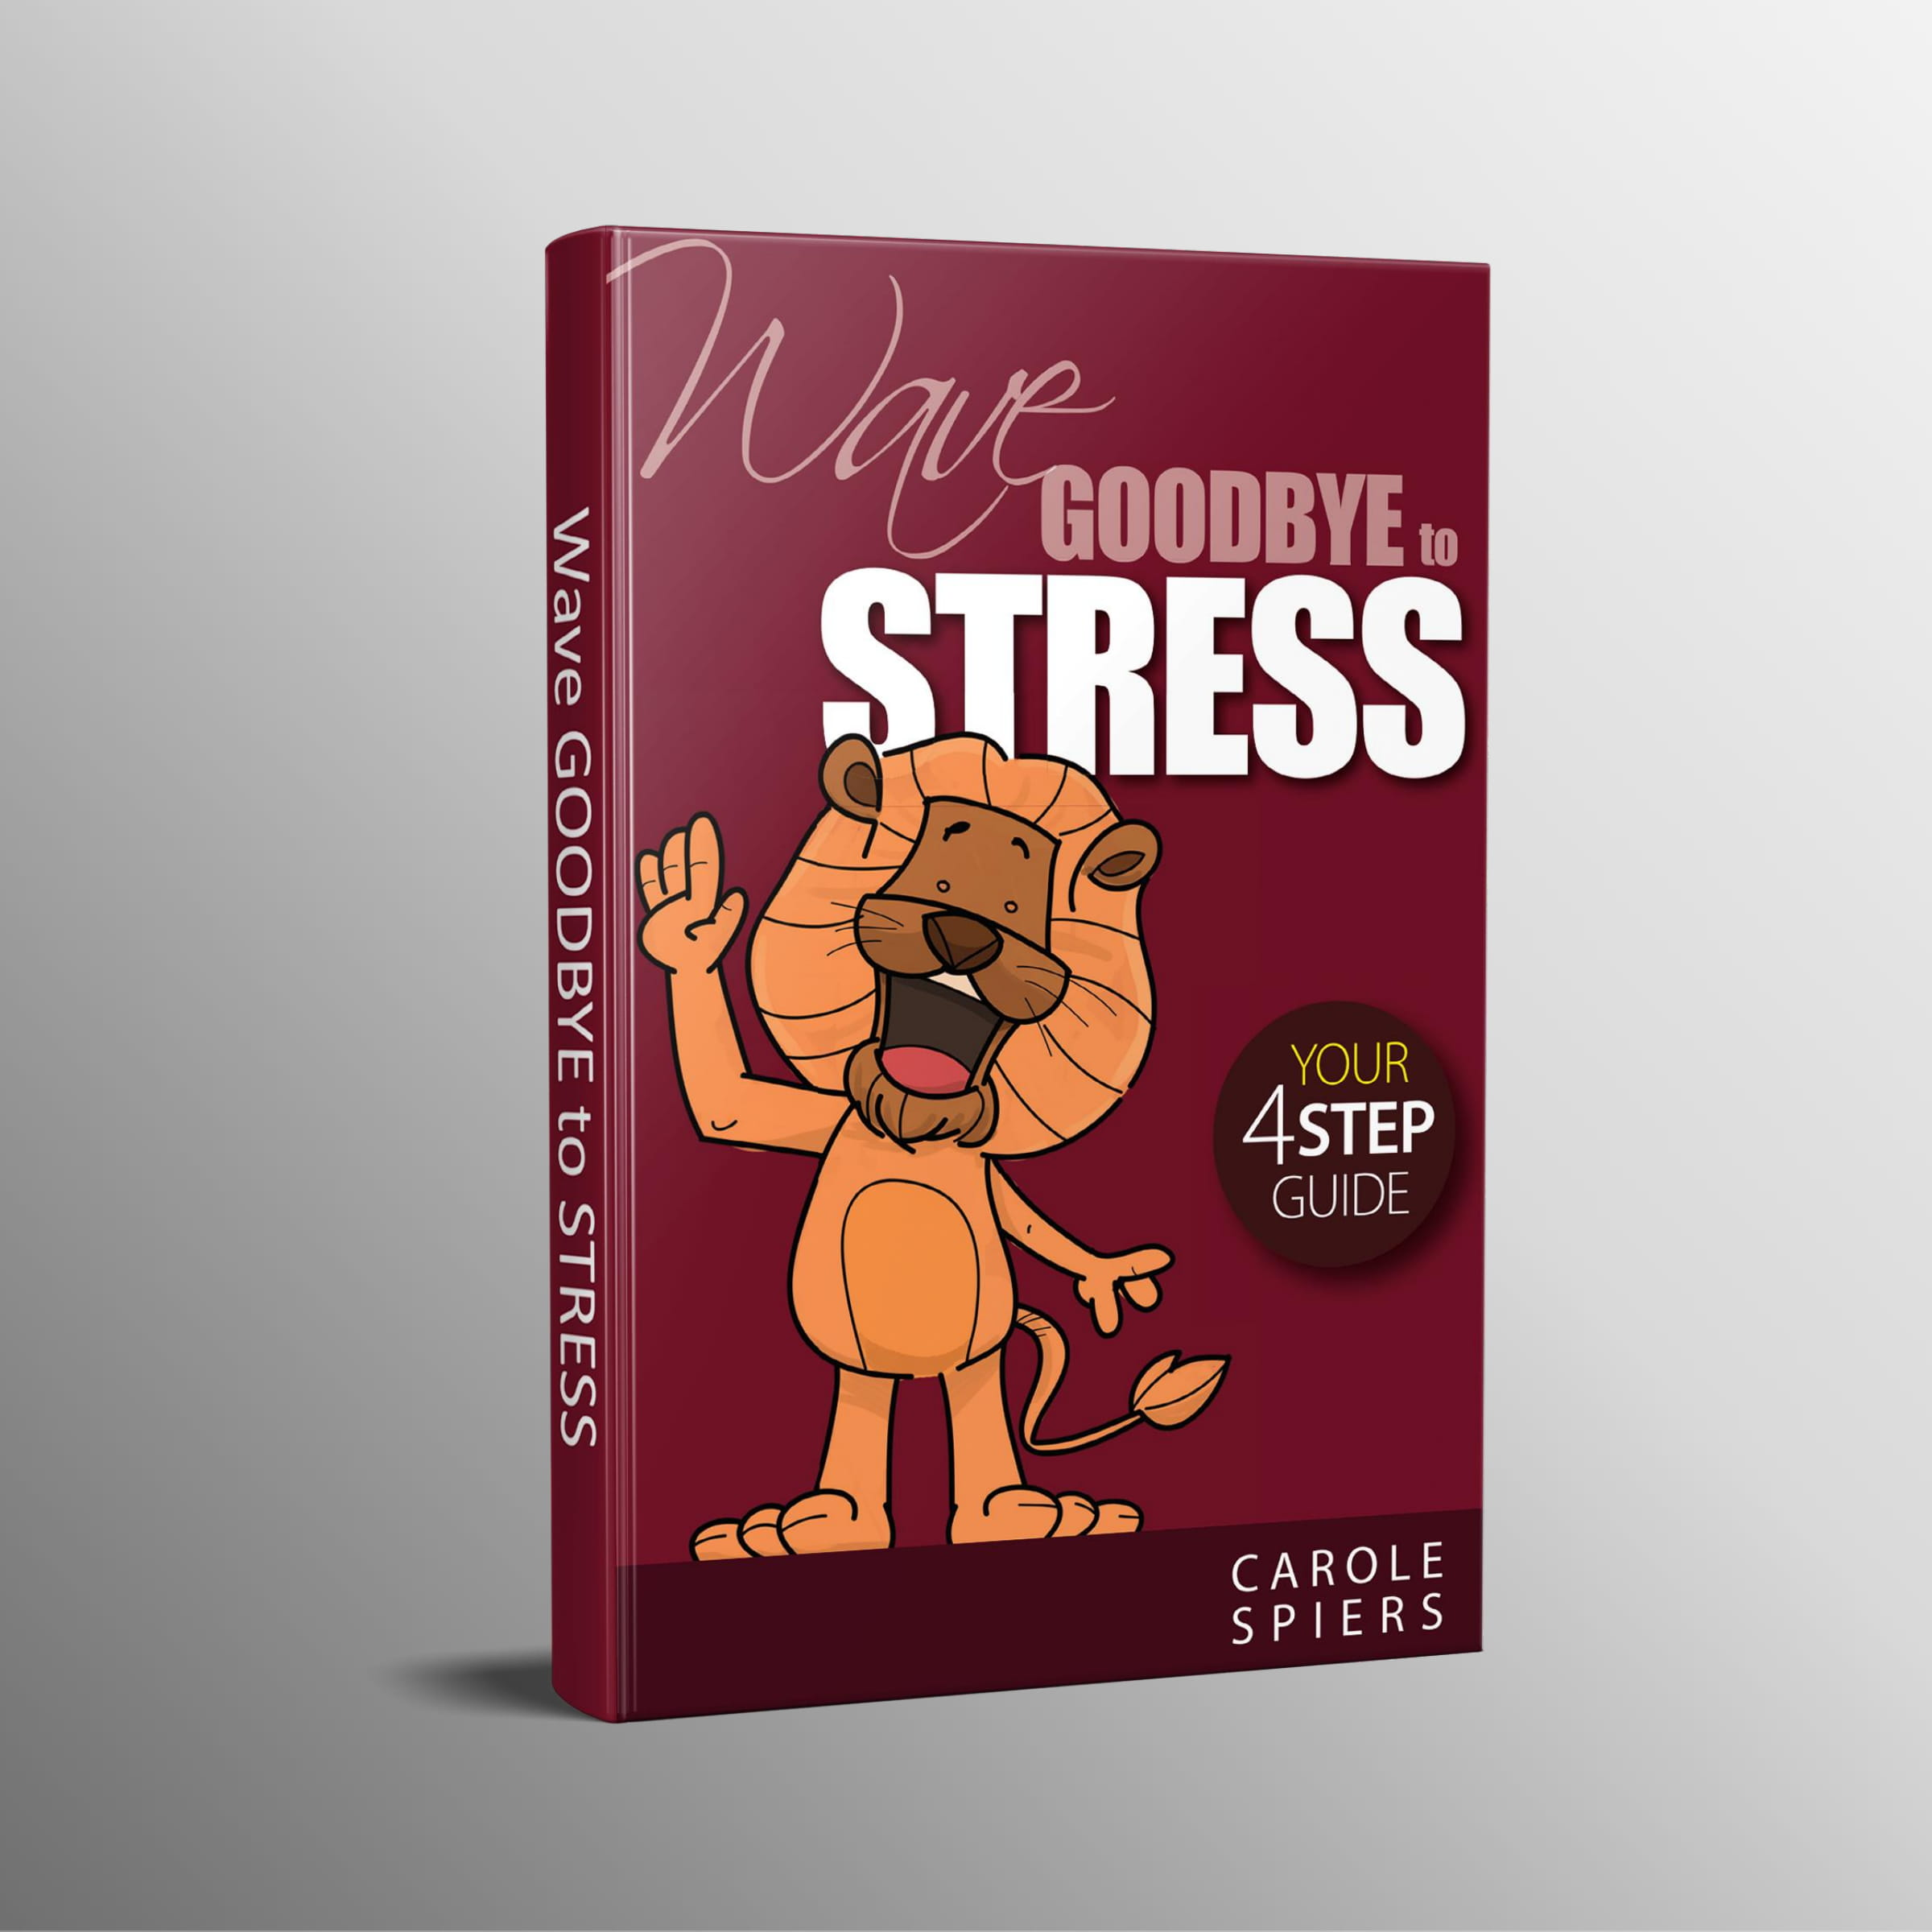 Wave Goodbye to Stress: How to beat it in 4 easy steps